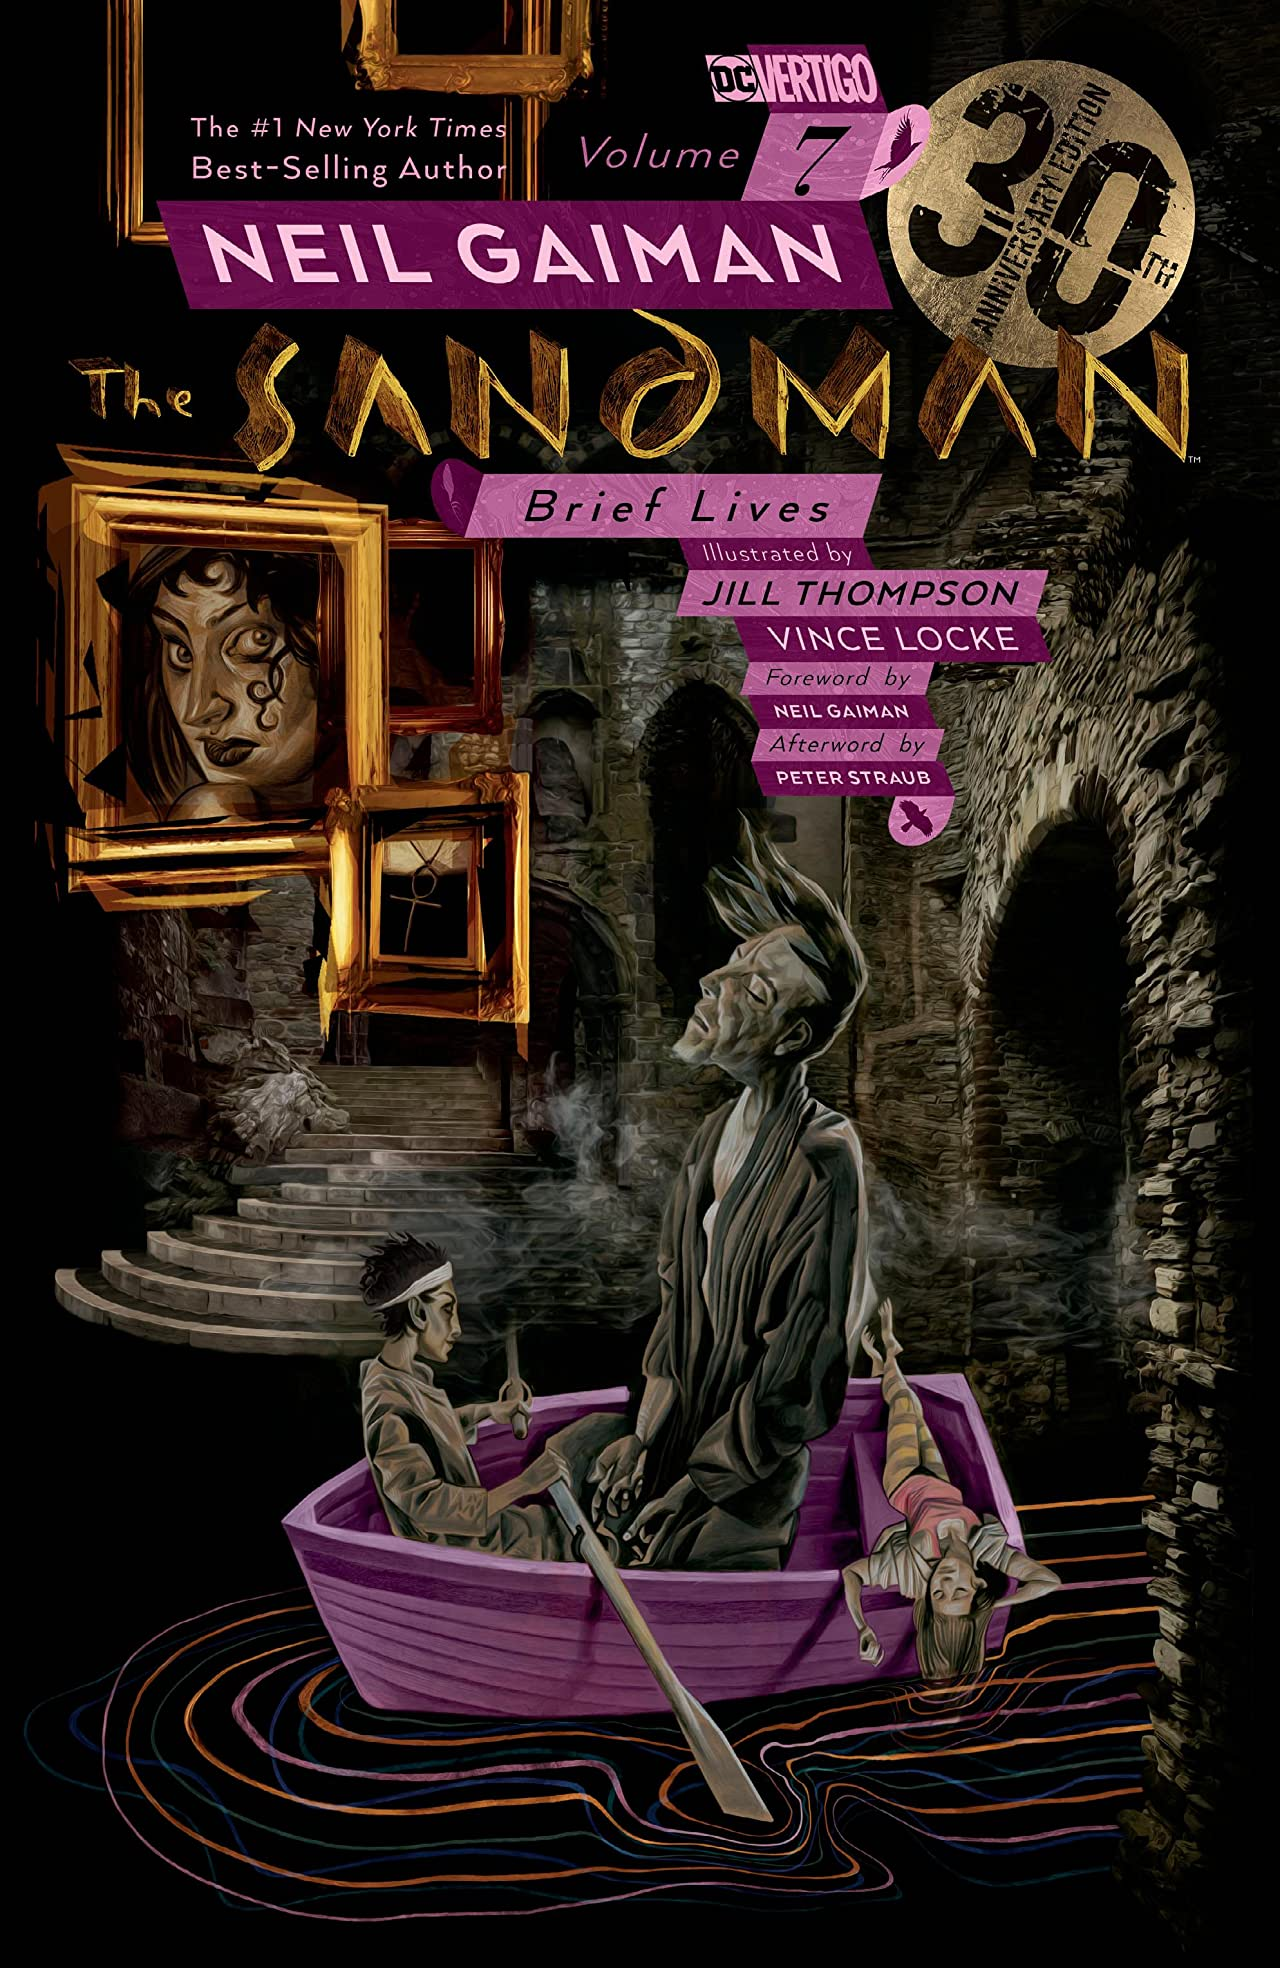 Sandman Vol. 7: Brief Lives - 30th Anniversary Edition